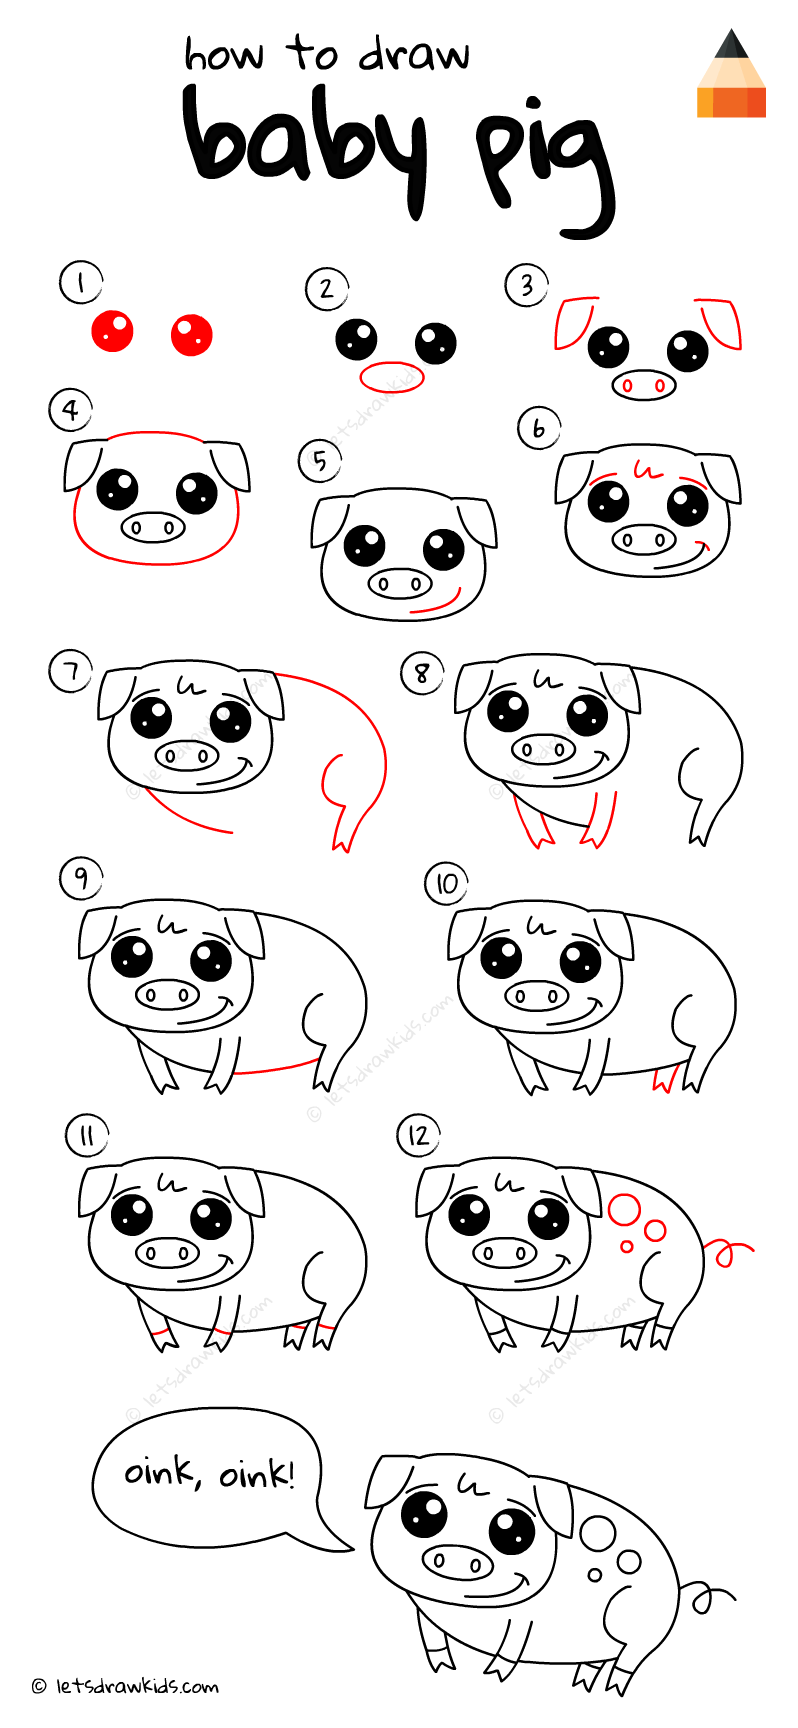 How To Draw Baby Pig